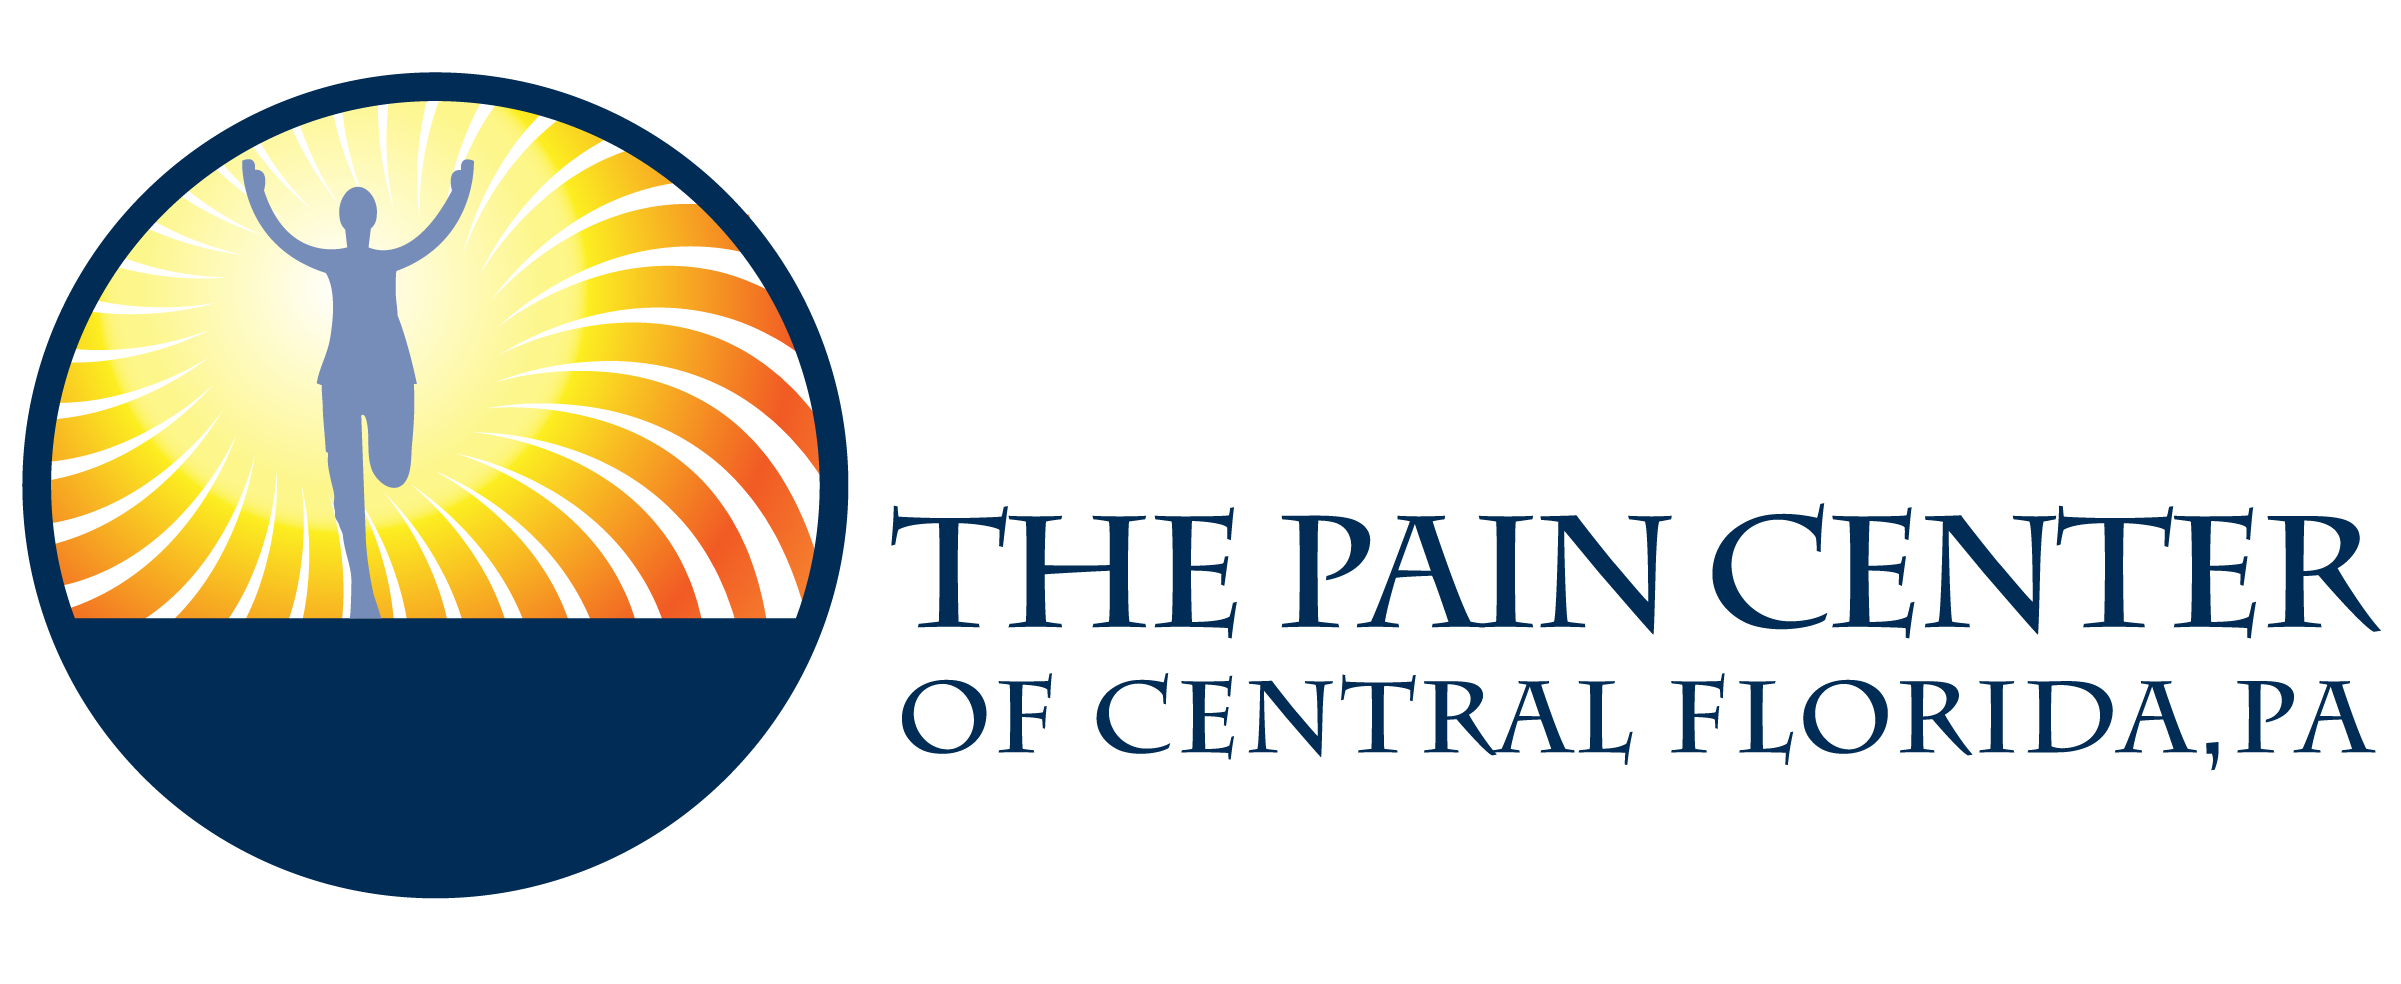 PainCenterLogo1.png